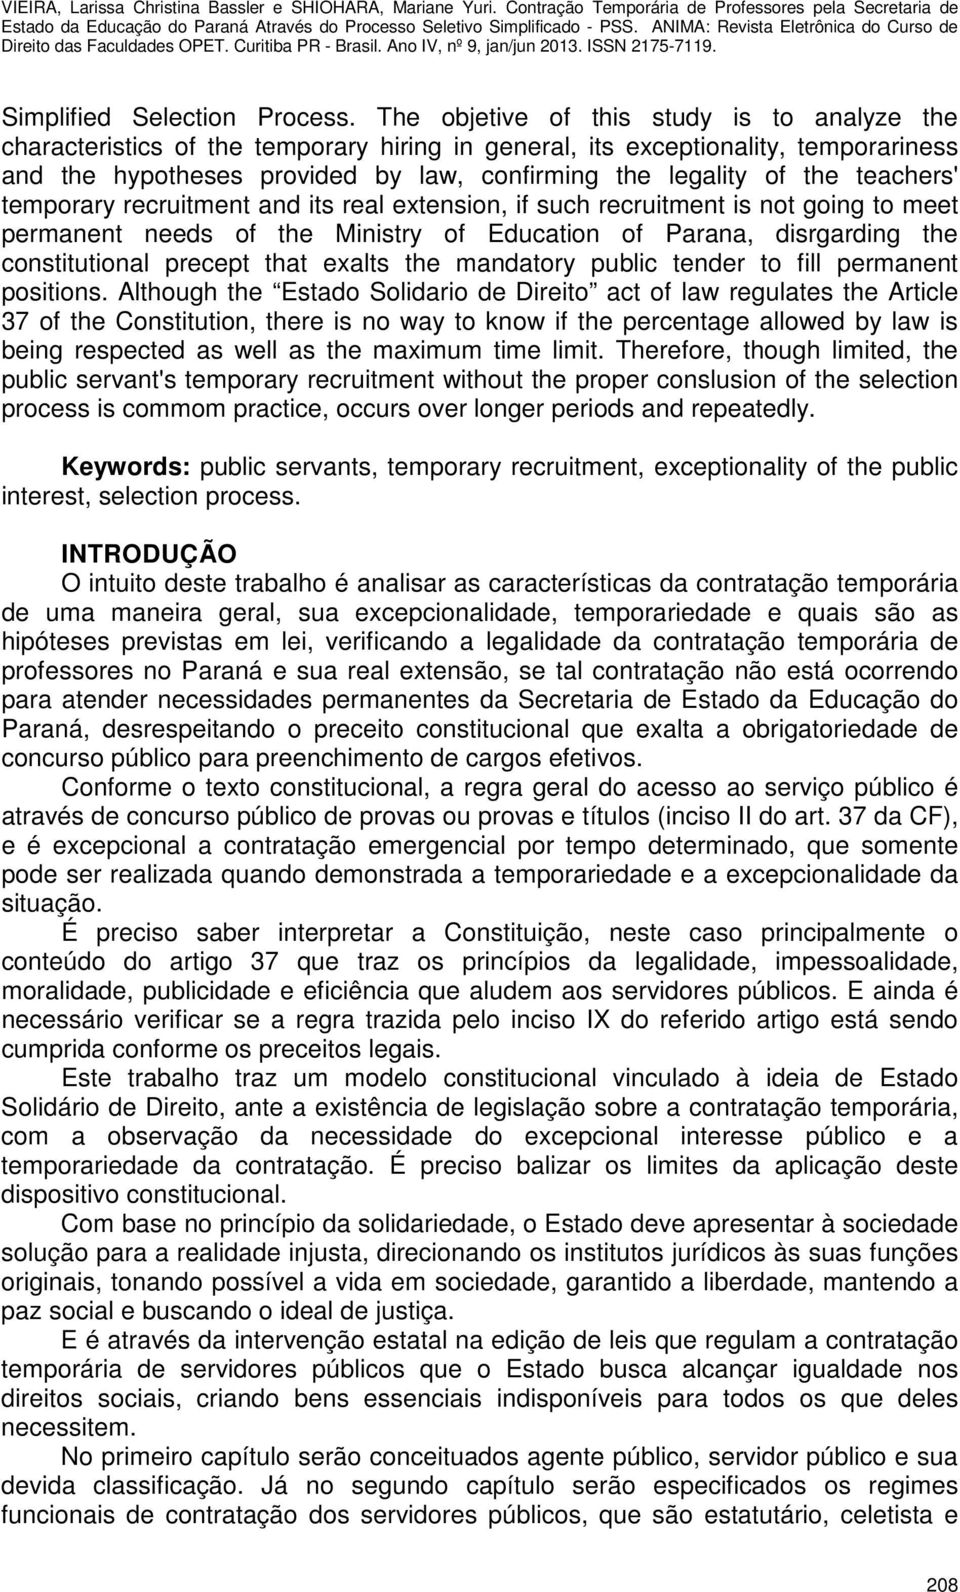 teachers' temporary recruitment and its real extension, if such recruitment is not going to meet permanent needs of the Ministry of Education of Parana, disrgarding the constitutional precept that